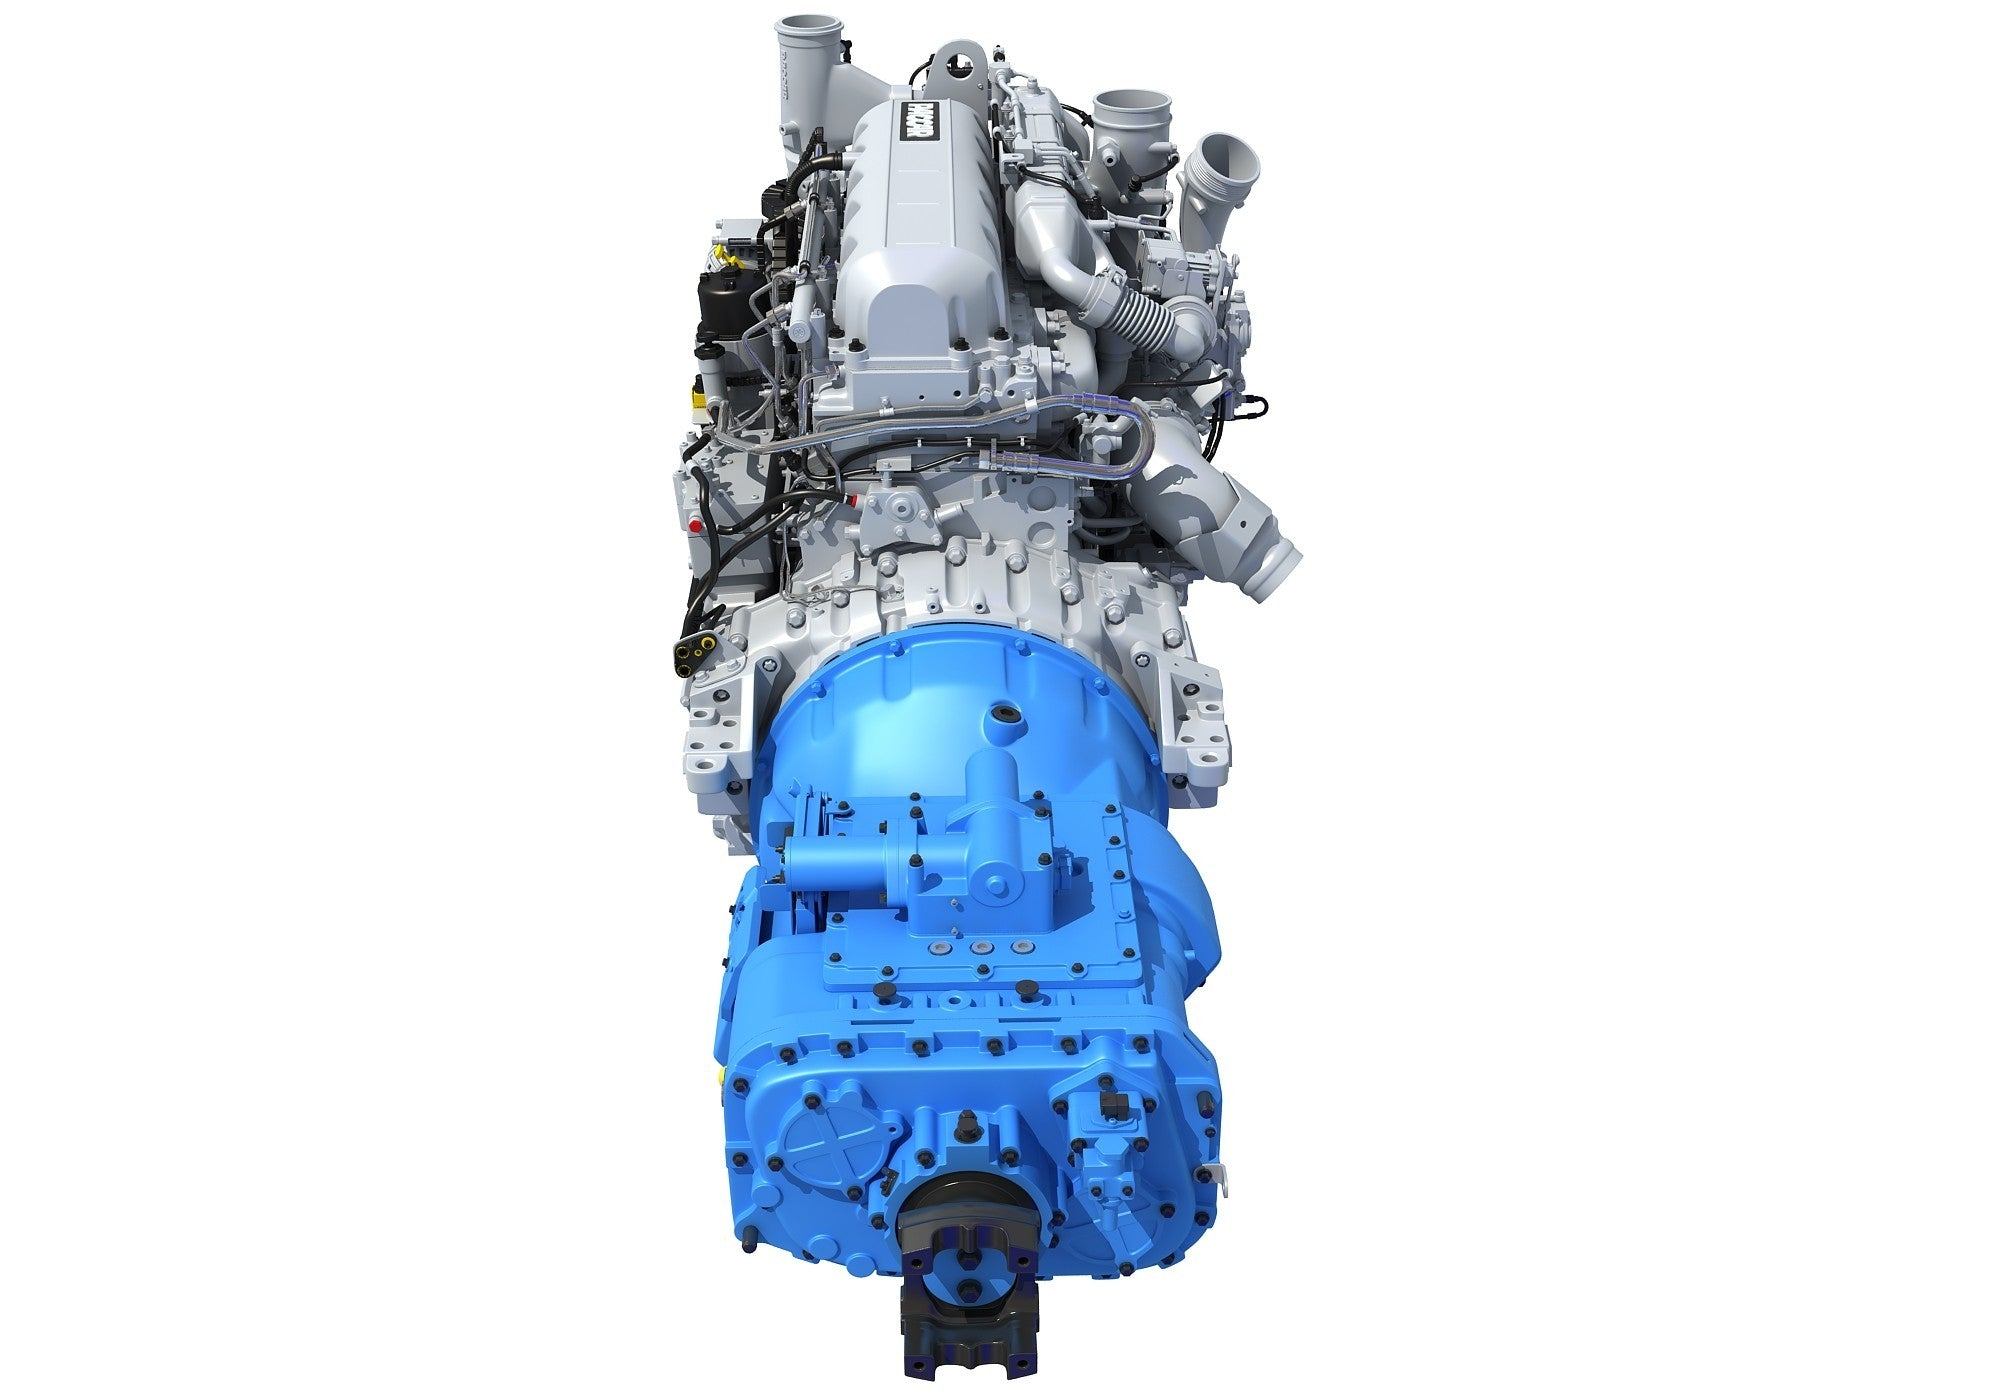 Paccar MX-13 Engine with Transmission